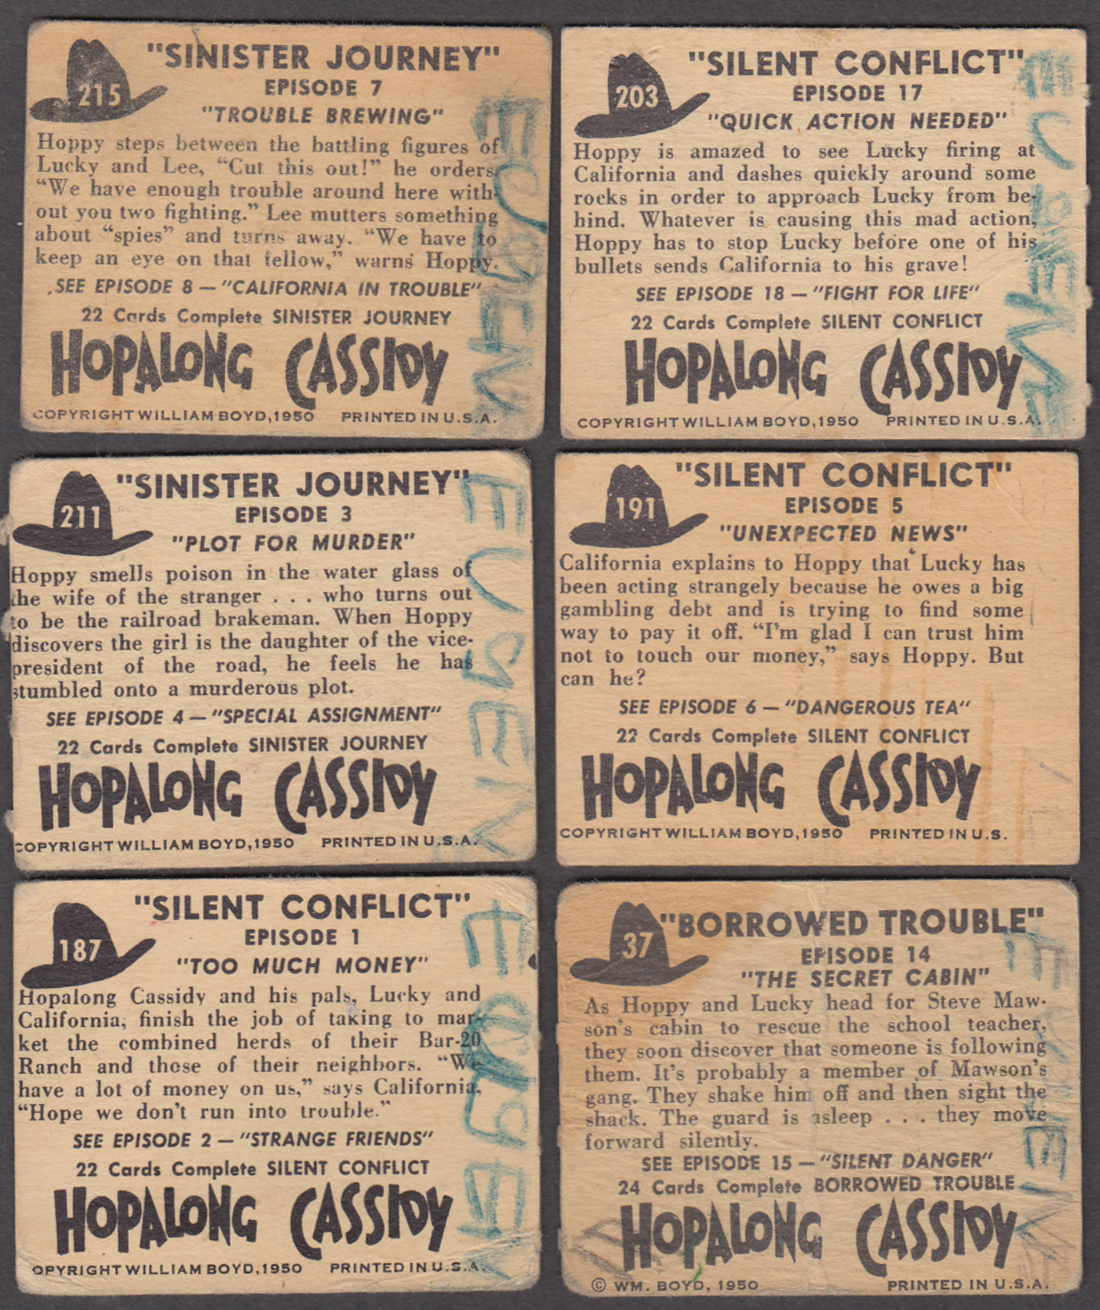 Group of SIX different Hopalong Cassidy TV tie-in trading cards 1950